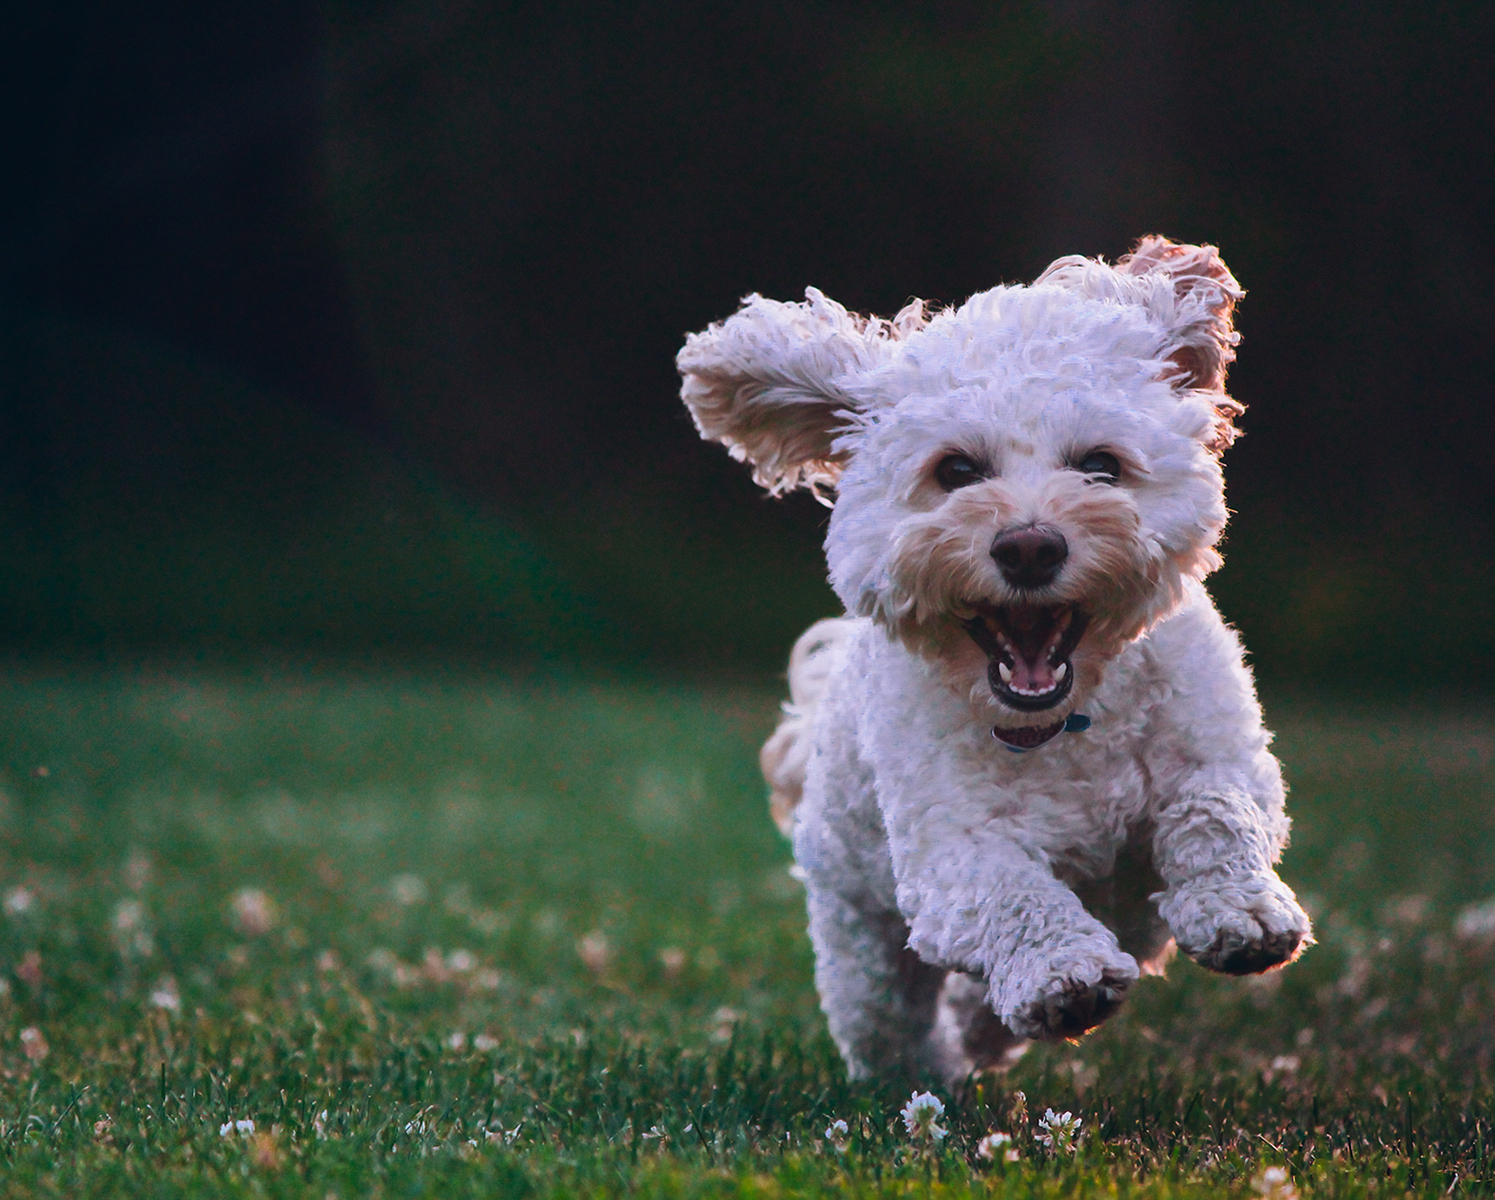 small dog running in clover field